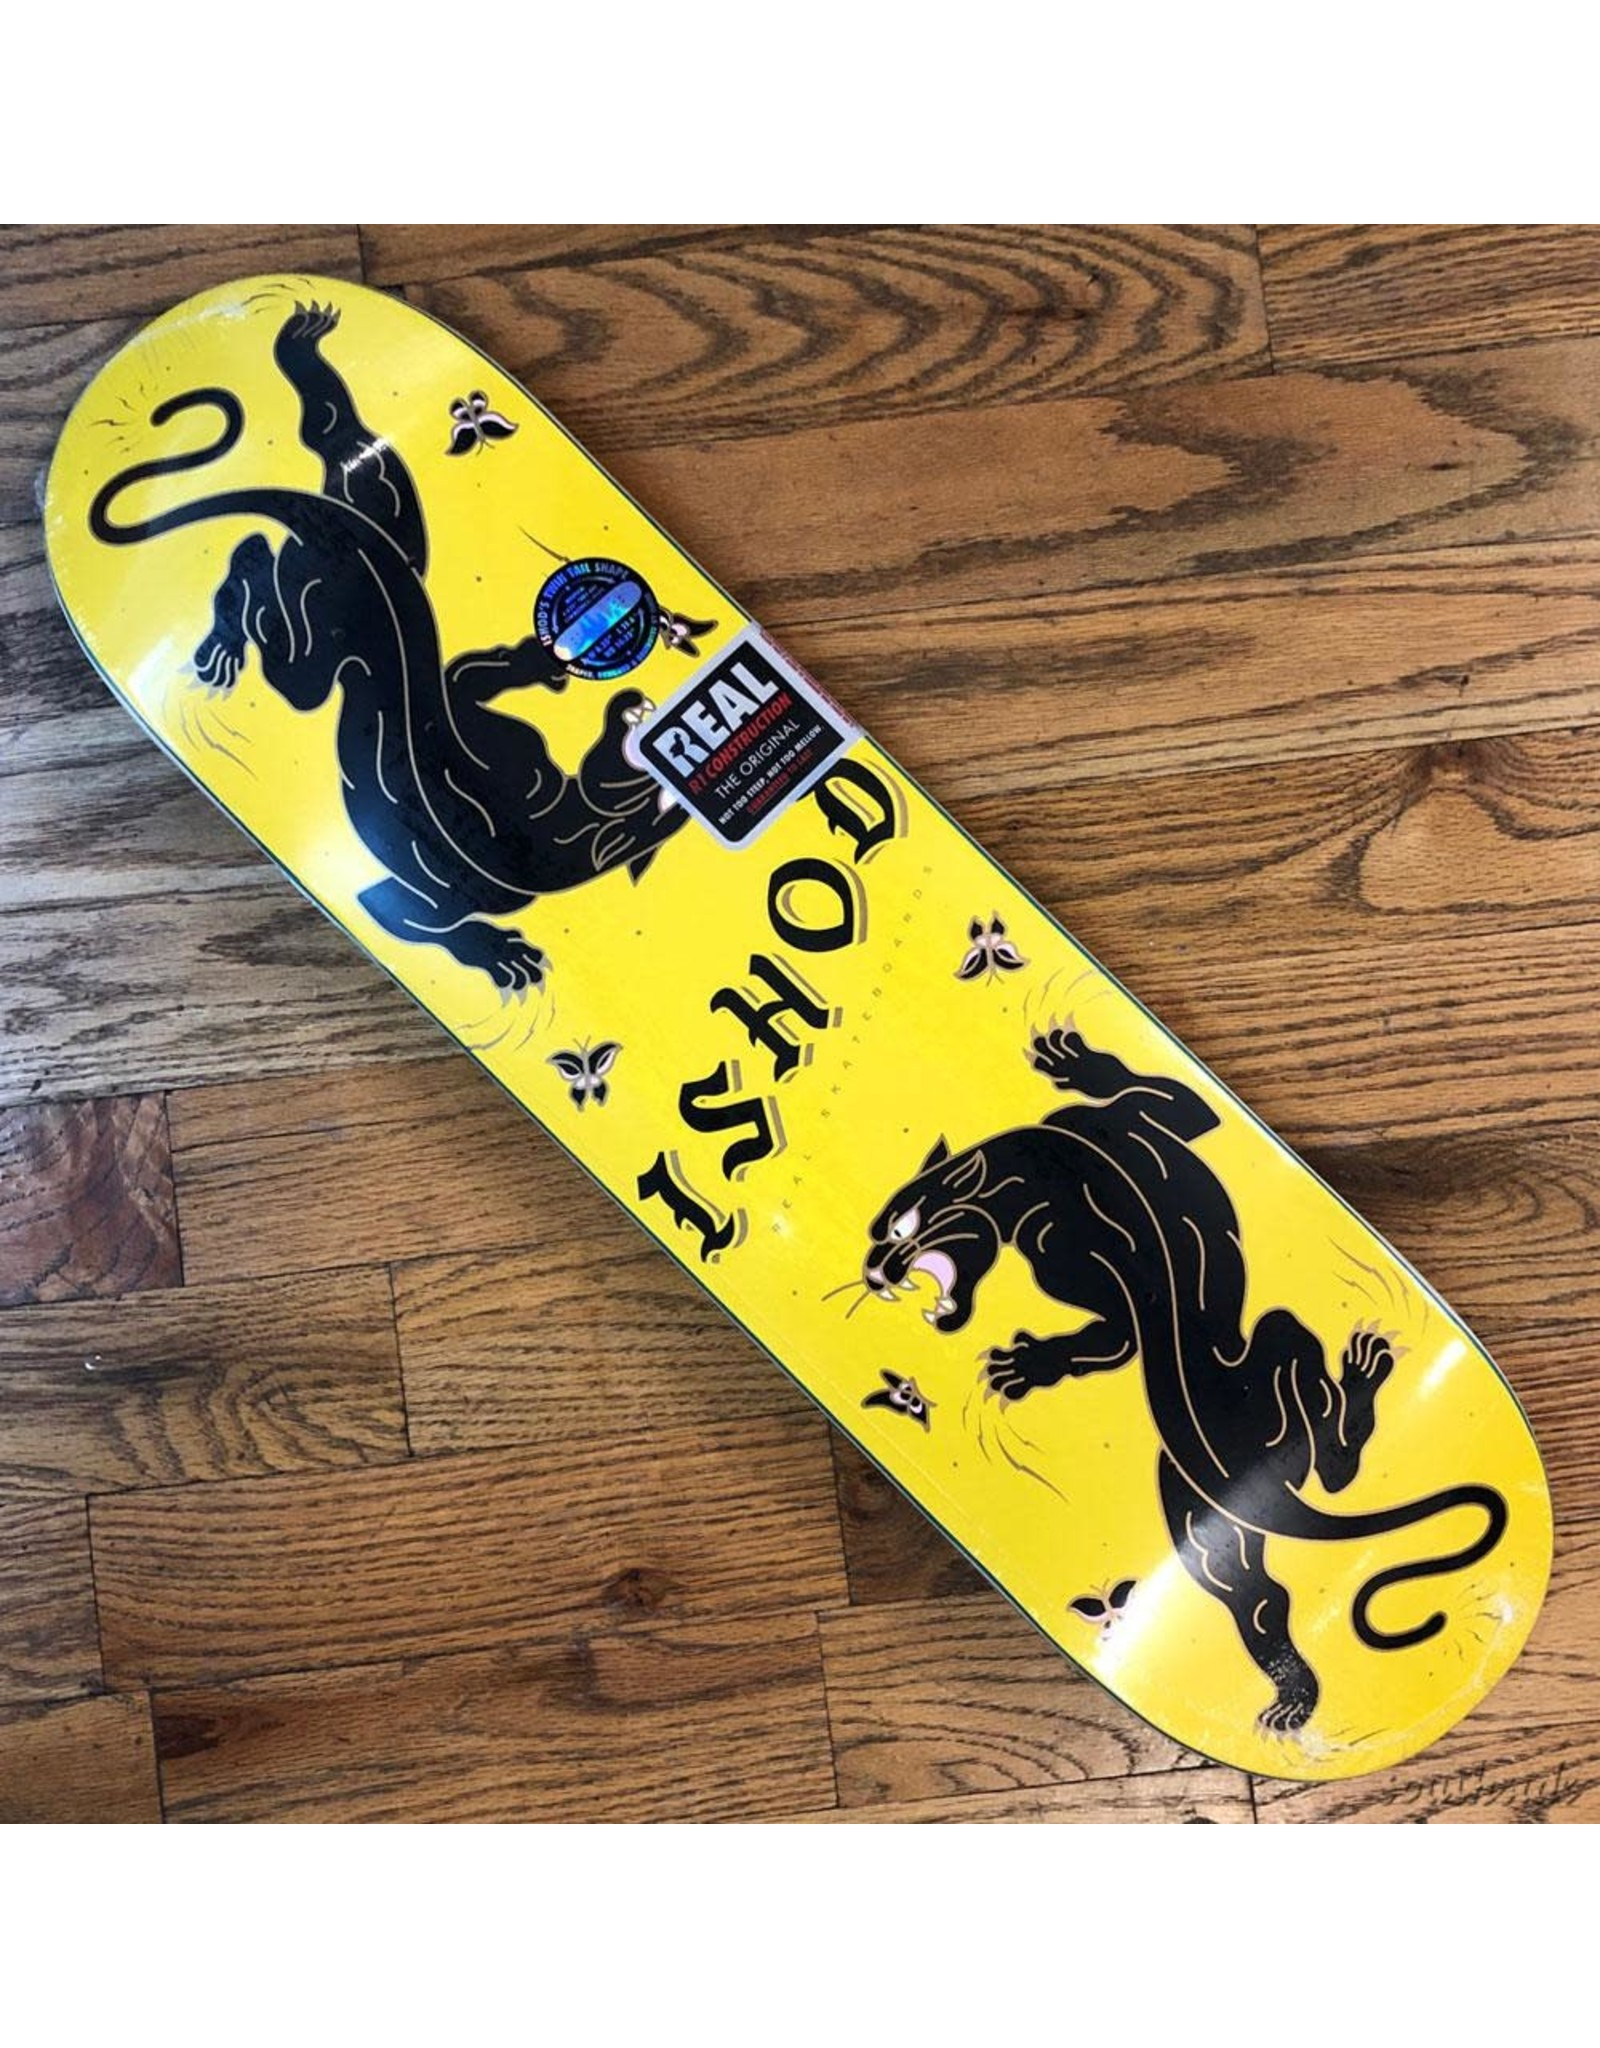 Real Deck Ishod Catscratch Yellow 8.25